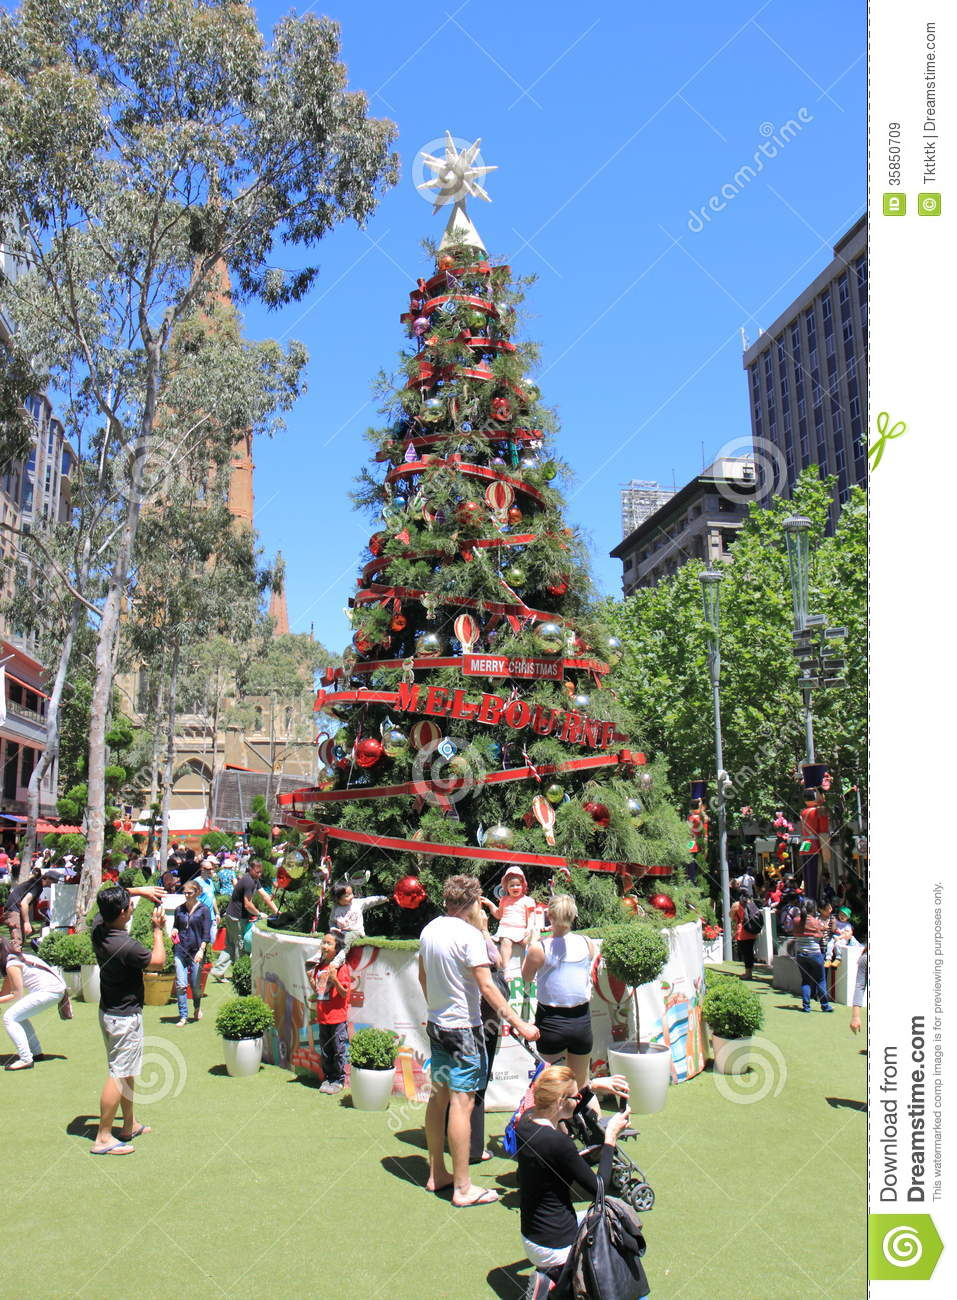 Date trees in Melbourne